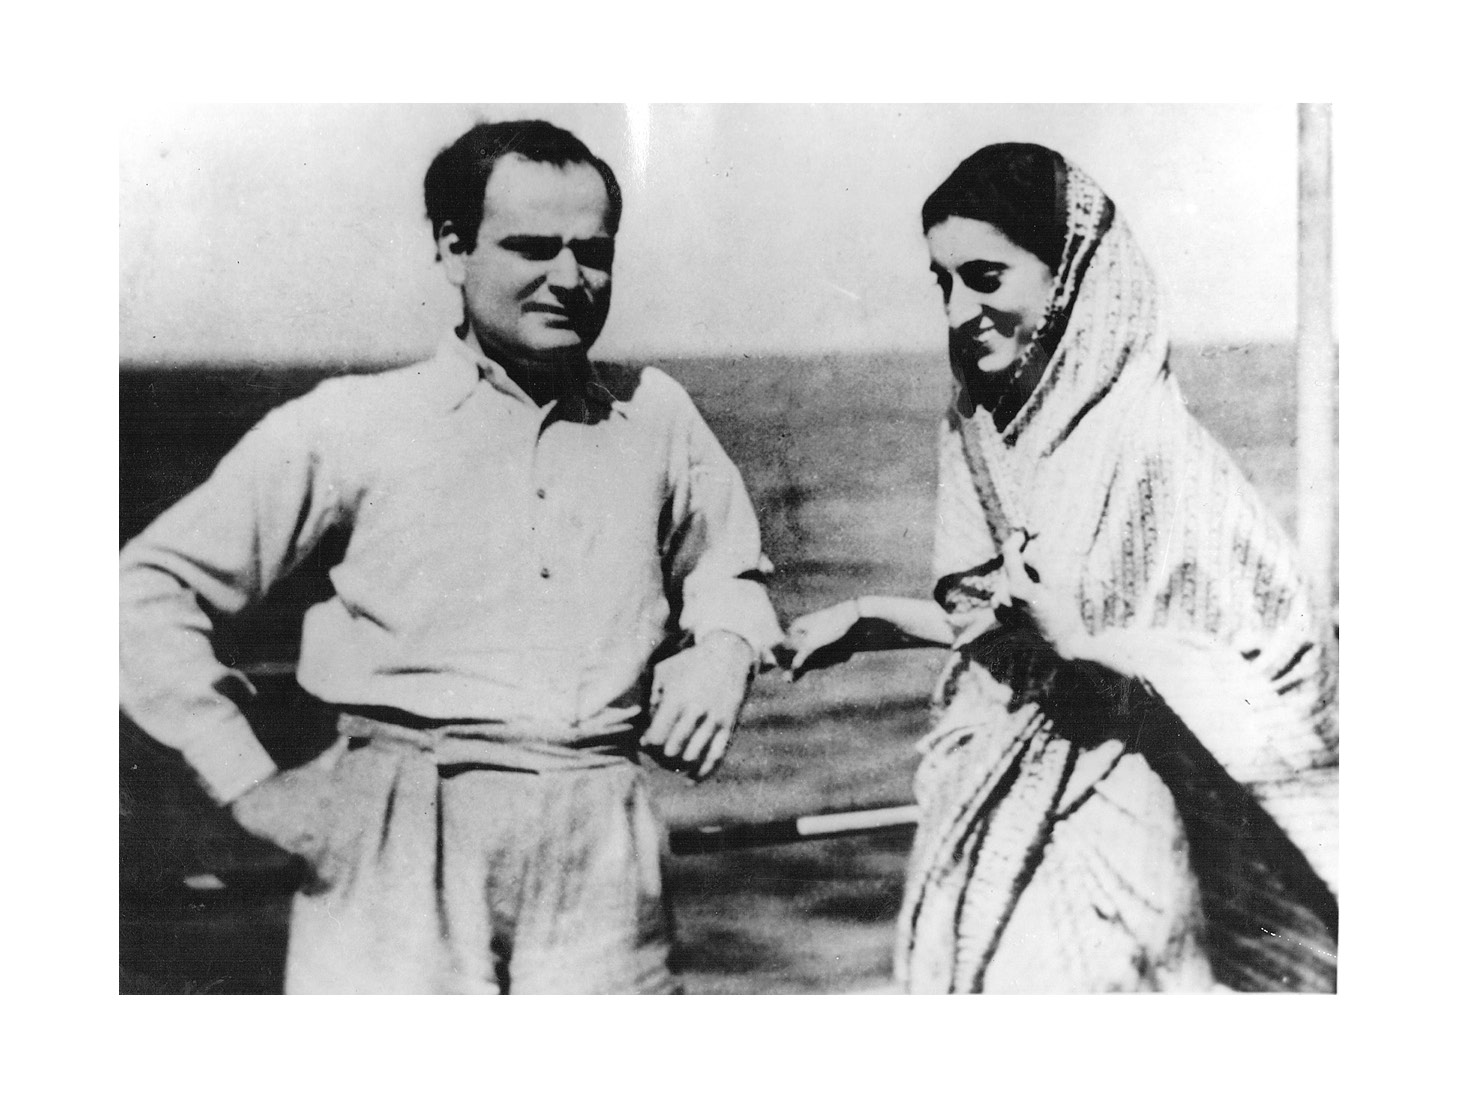 great leader indira gandhi Gandhi and indira born in the politically influential nehru dynasty, she grew up in an intensely political atmosphere her grandfather, motilal nehru, was a prominent indian nationalist leader she was brought up in an environment with great exposure to the political figures of the day and was.